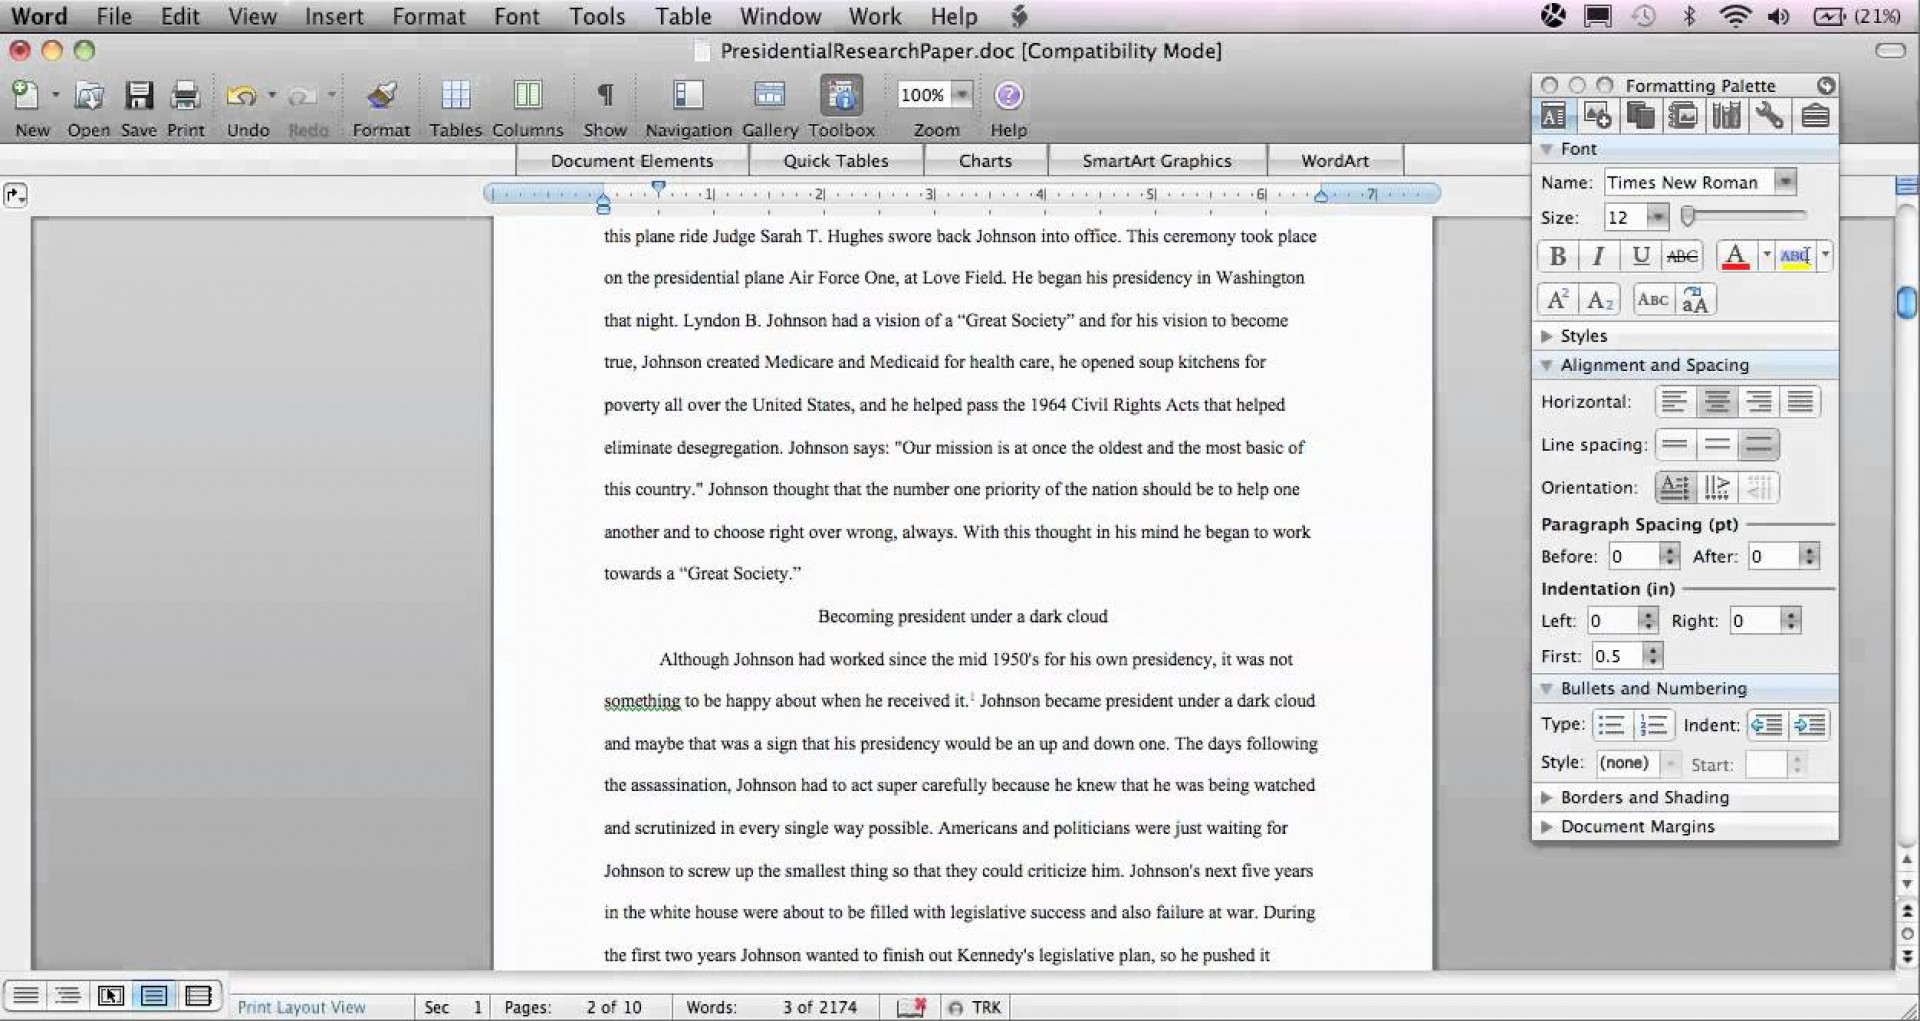 005 Maxresdefault Research Paper How To Format In Fantastic A Word Write Make Microsoft 1920